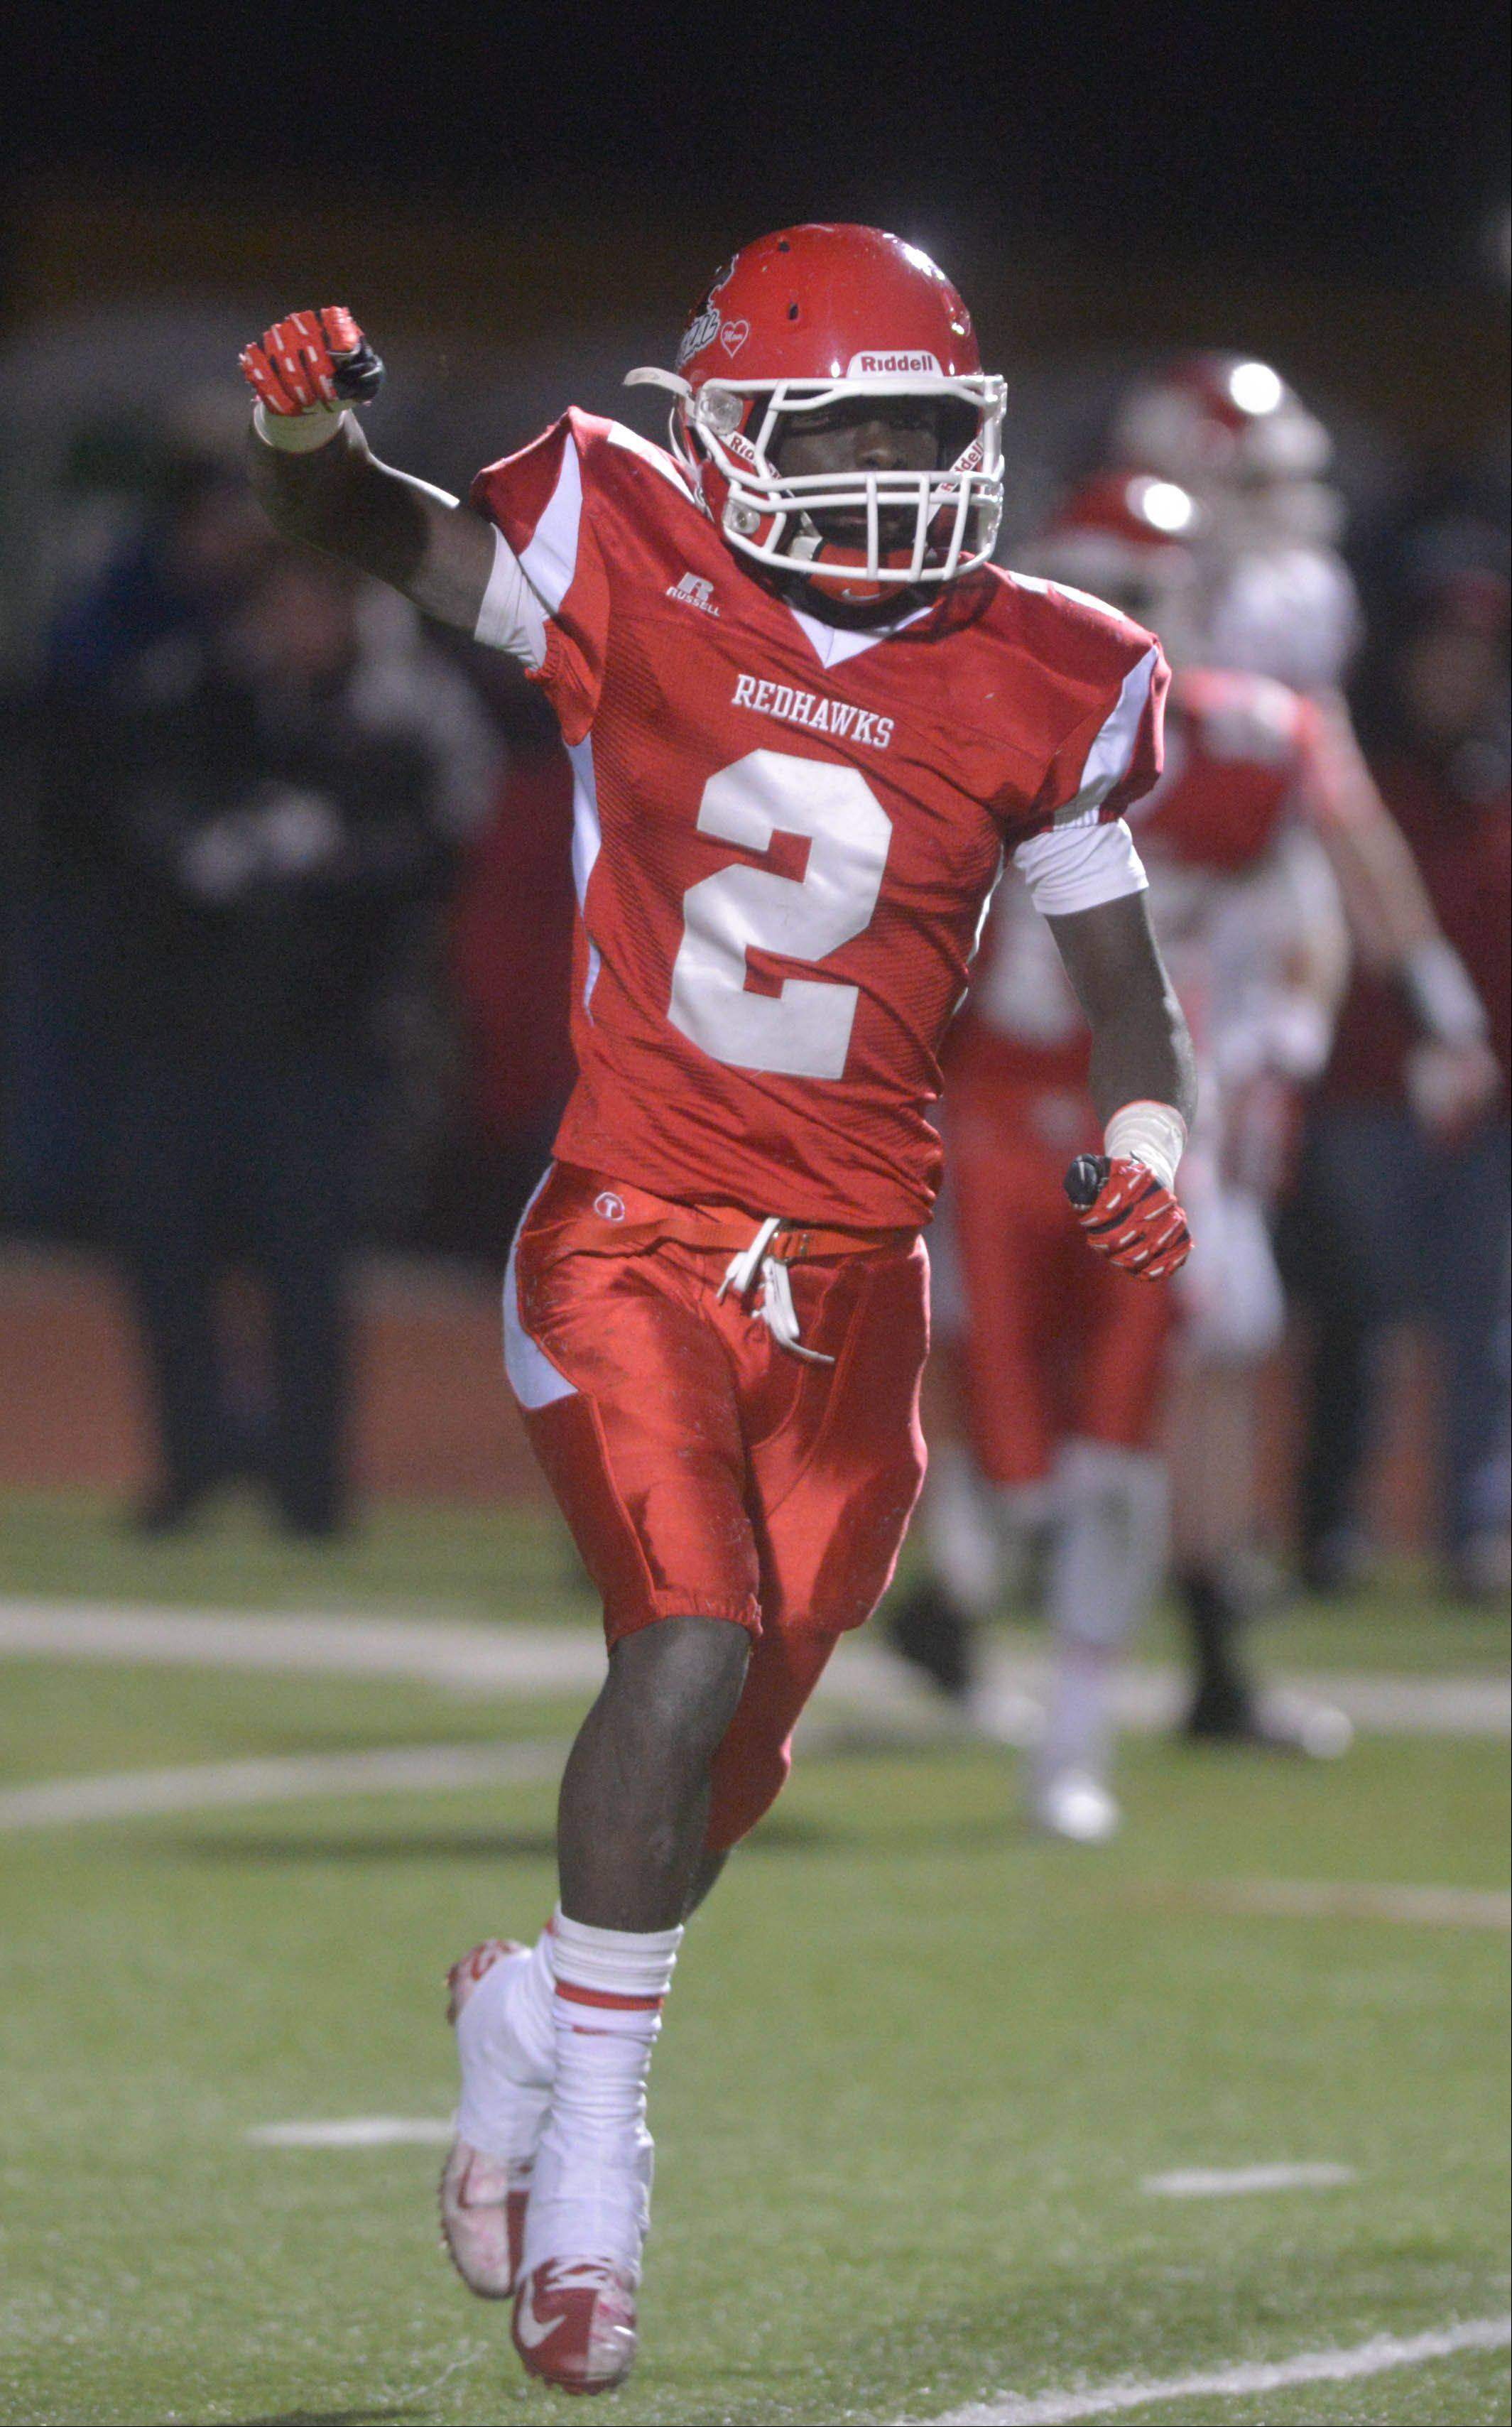 Naperville Central stuns Marist, will play for 8A title